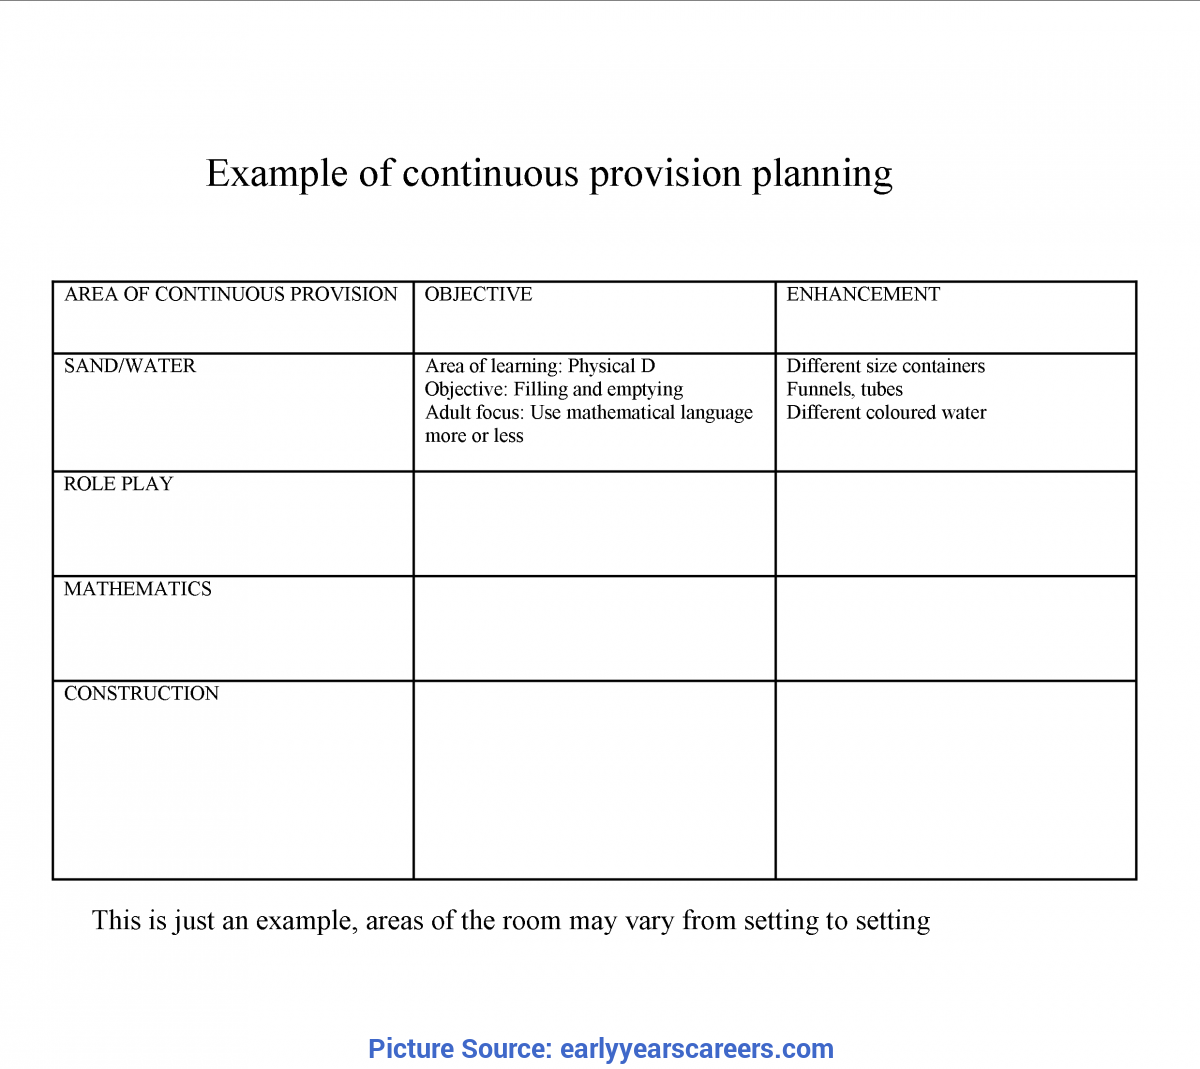 Regular Nursery Planning Sheets Continuous Provision Planning For Early Years Settings - Earl